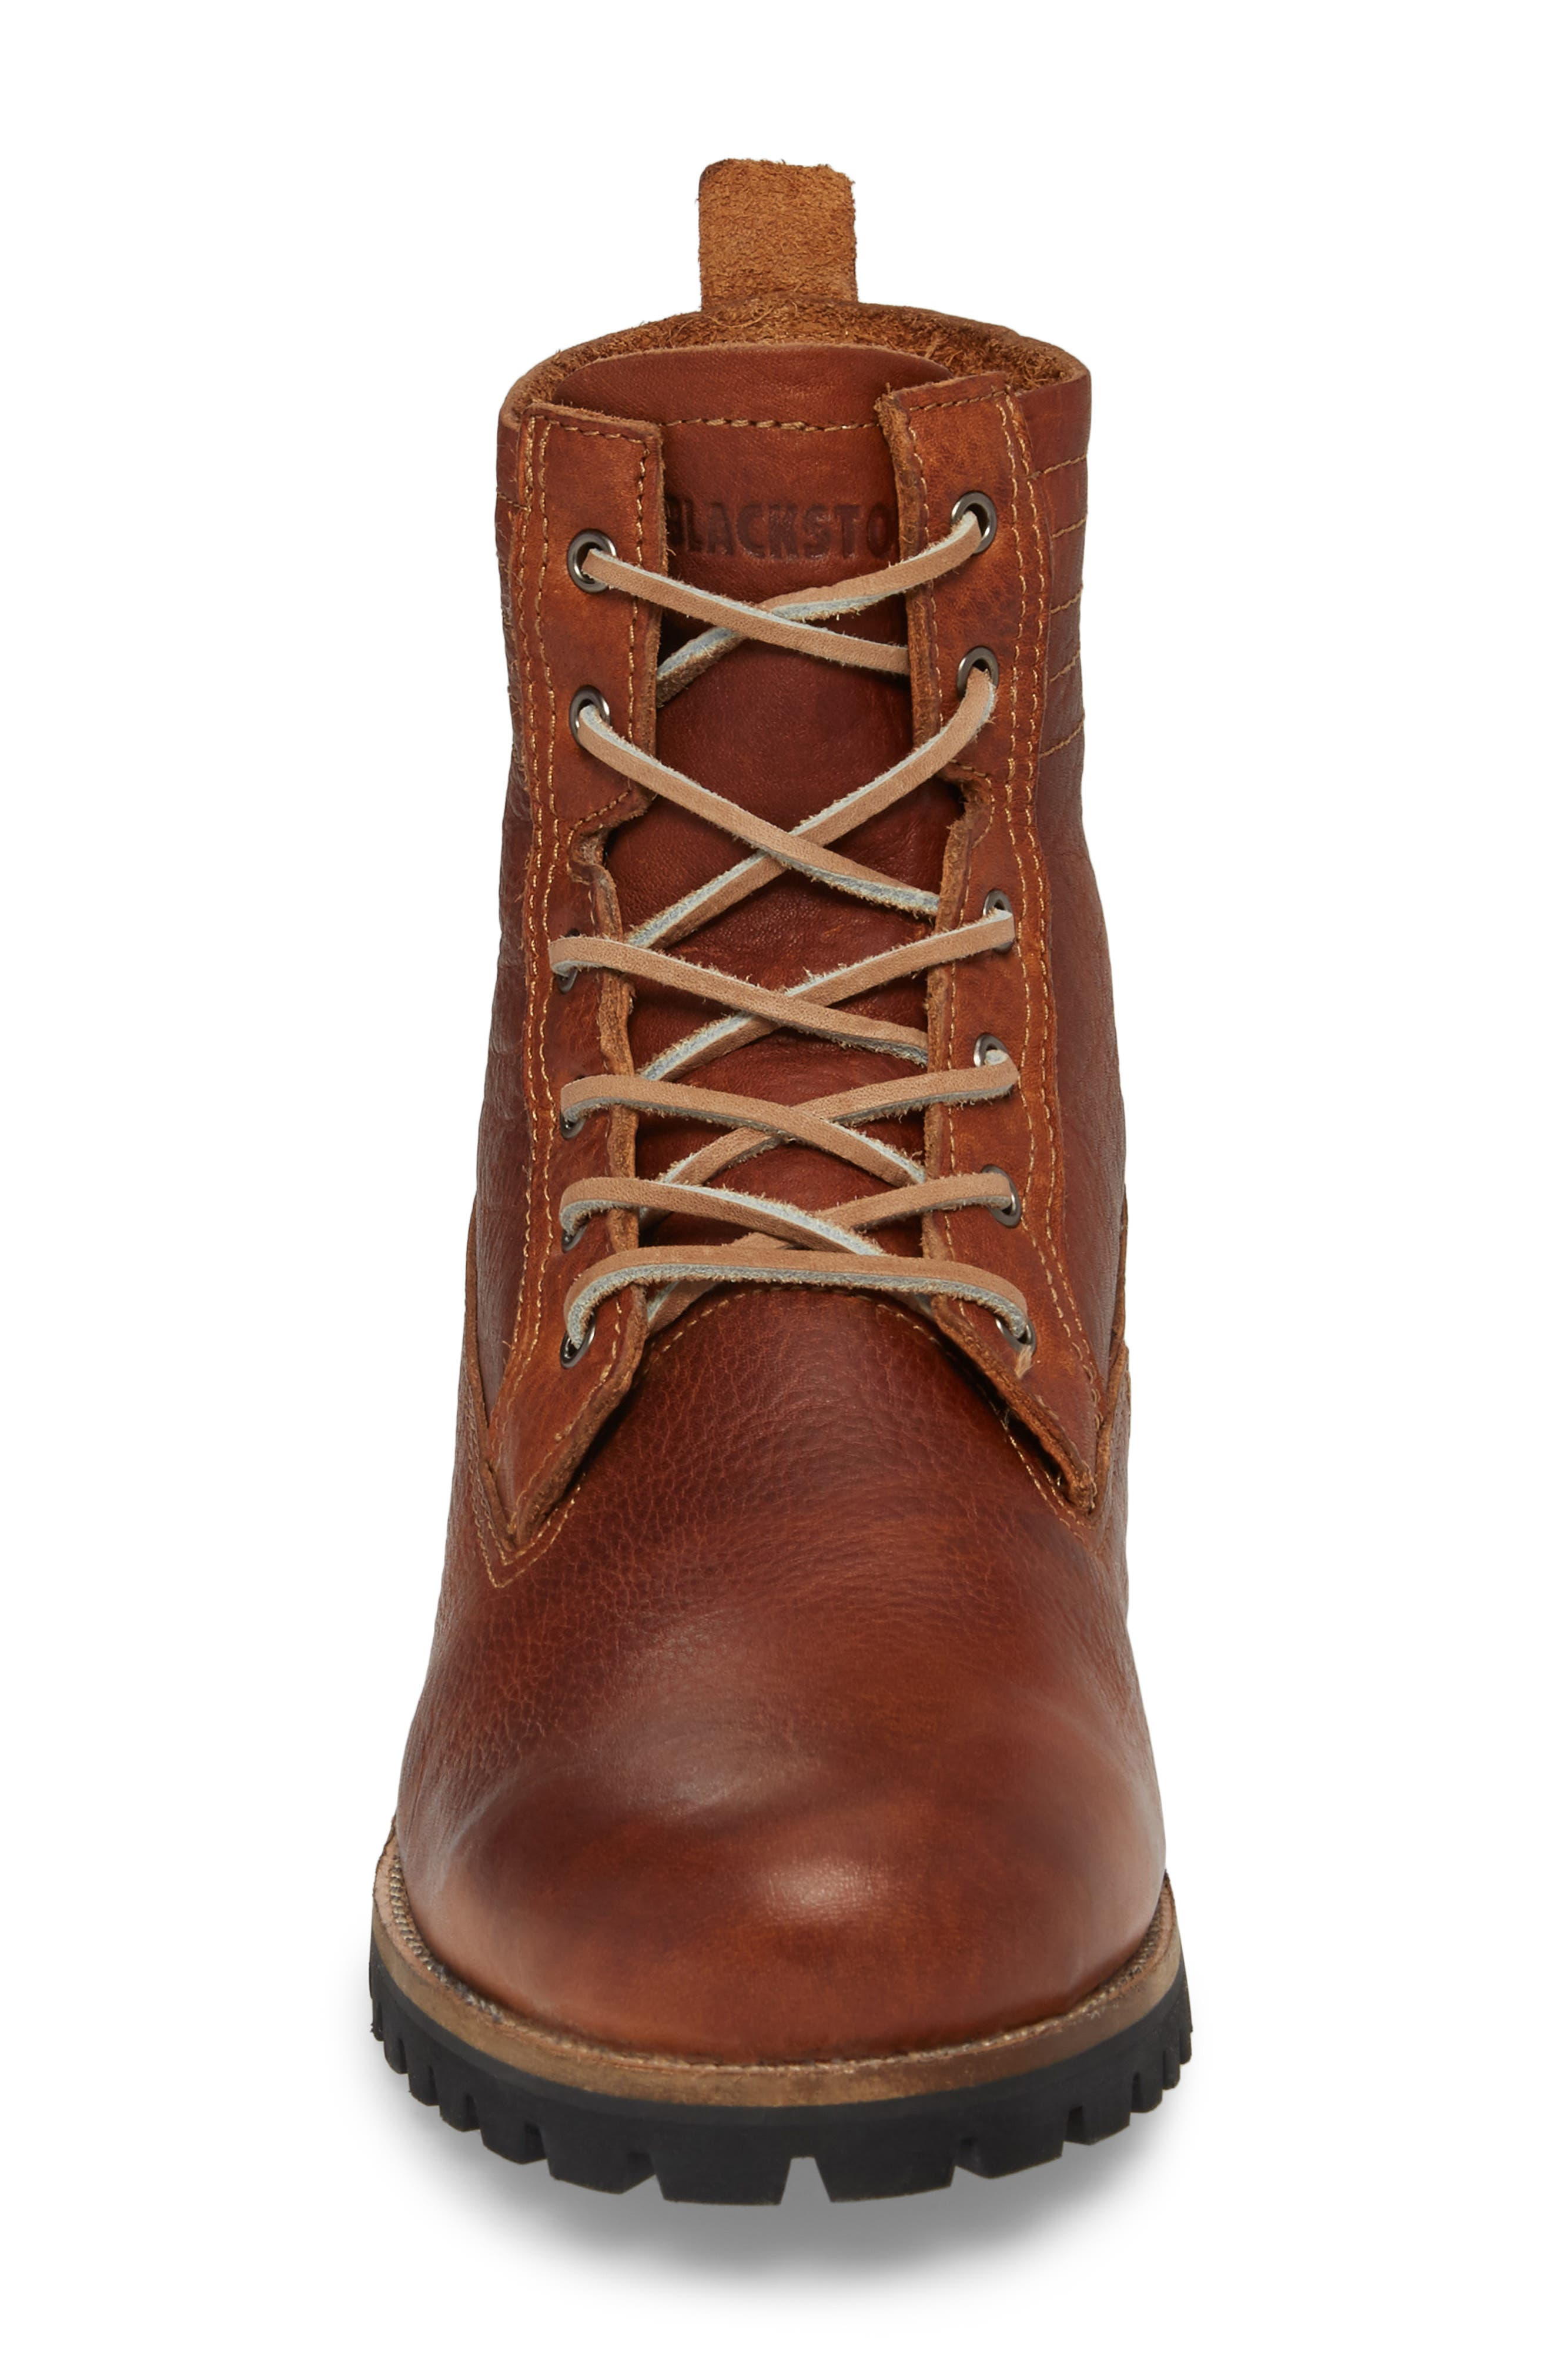 IM 12 Plain Toe Boot with Genuine Shearling,                             Alternate thumbnail 4, color,                             Cuoio Leather